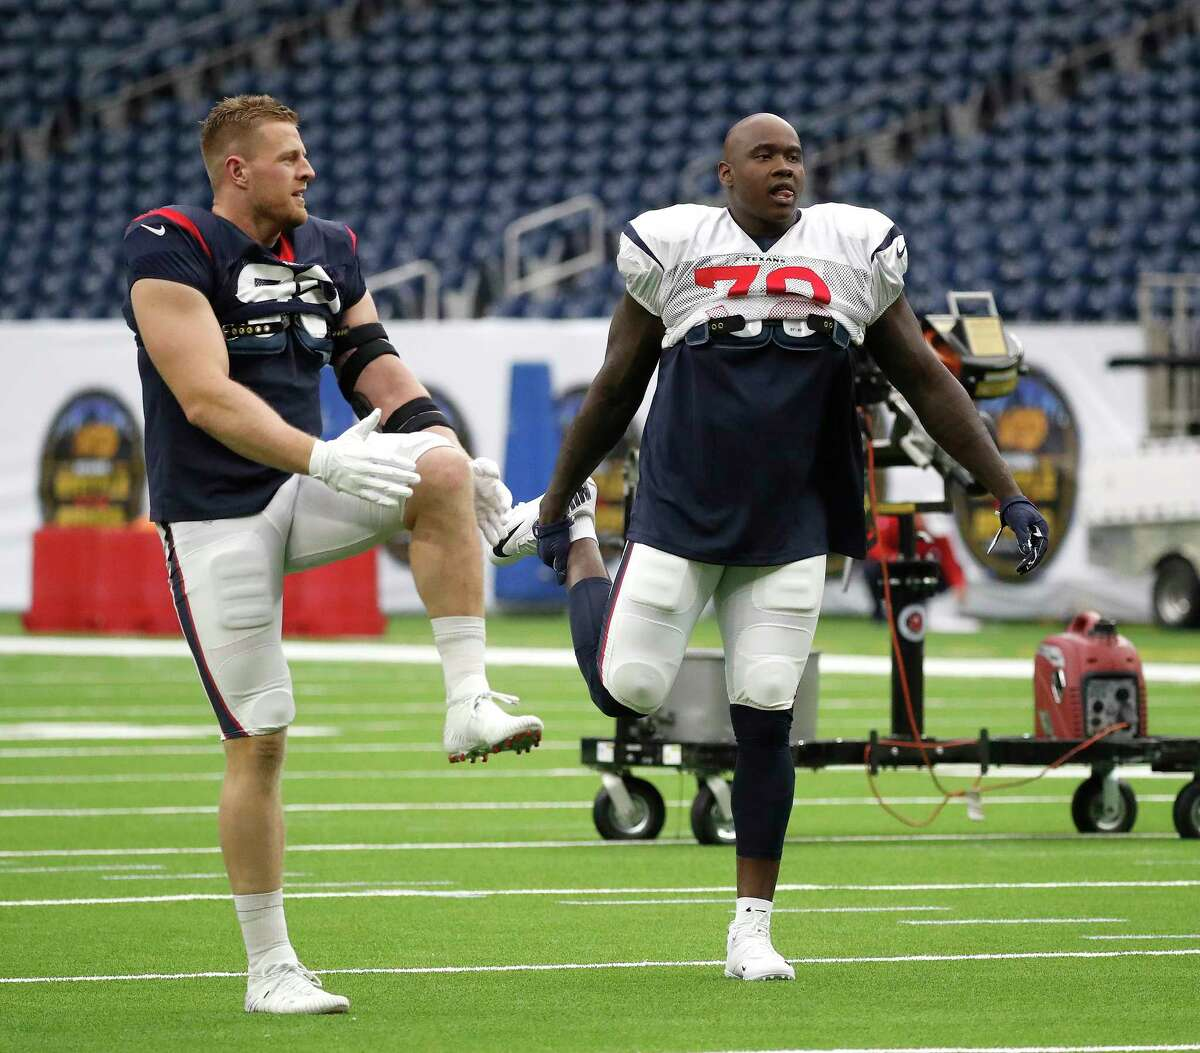 Newly acquired Texans left tackle Laremy Tunsil (78) stretches with defensive end J.J. Watt (99) during the Texans football practice at NRG Stadium, September 2, 2019, in Houston.